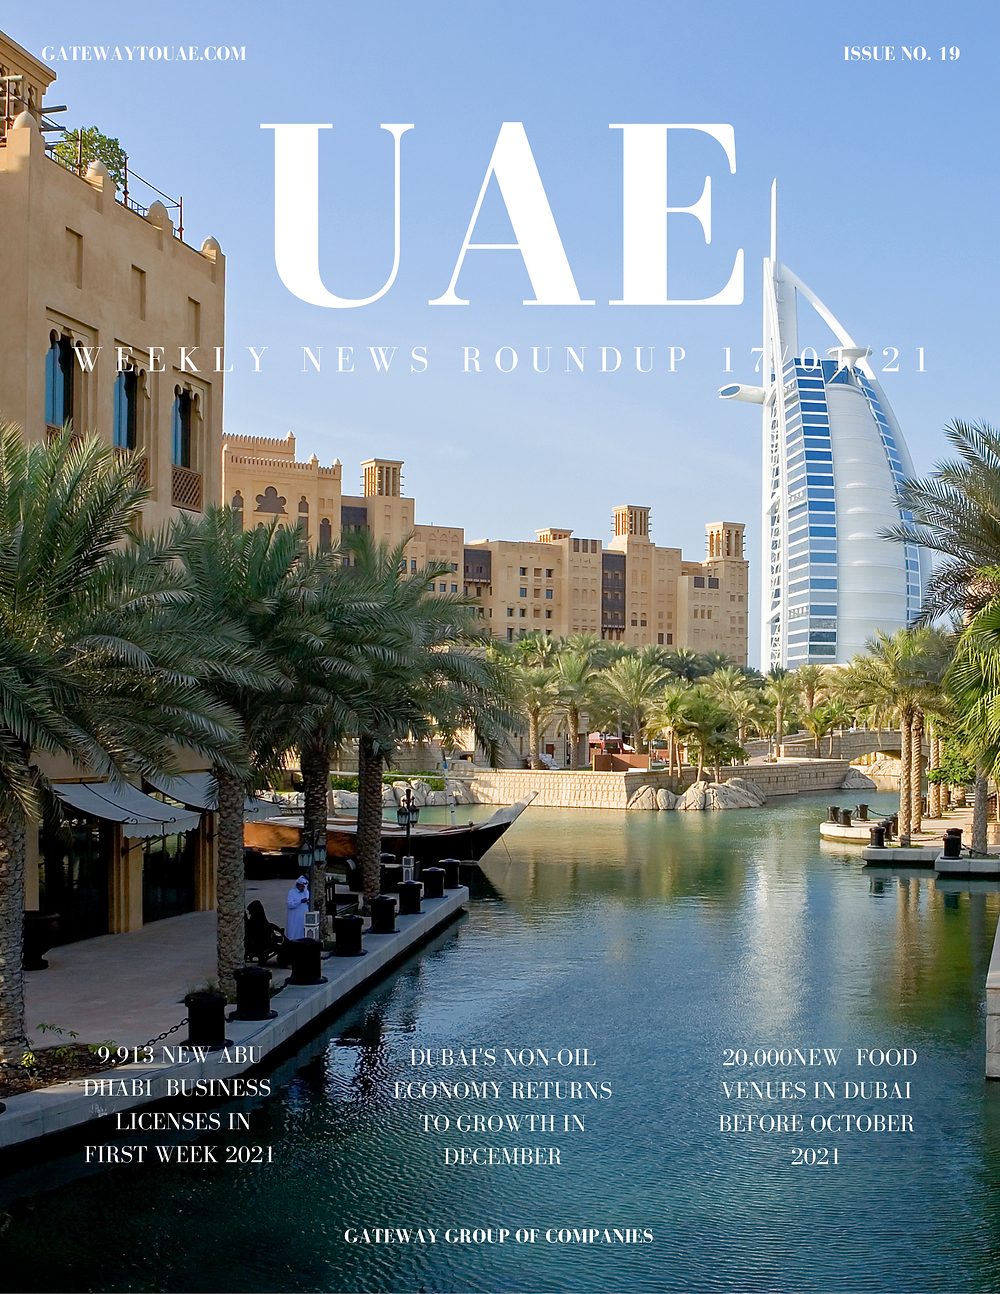 UAE business news headlines 17th January 2021 Issue 19 Gateway Group Of Companies Abu Dhabi Dubai